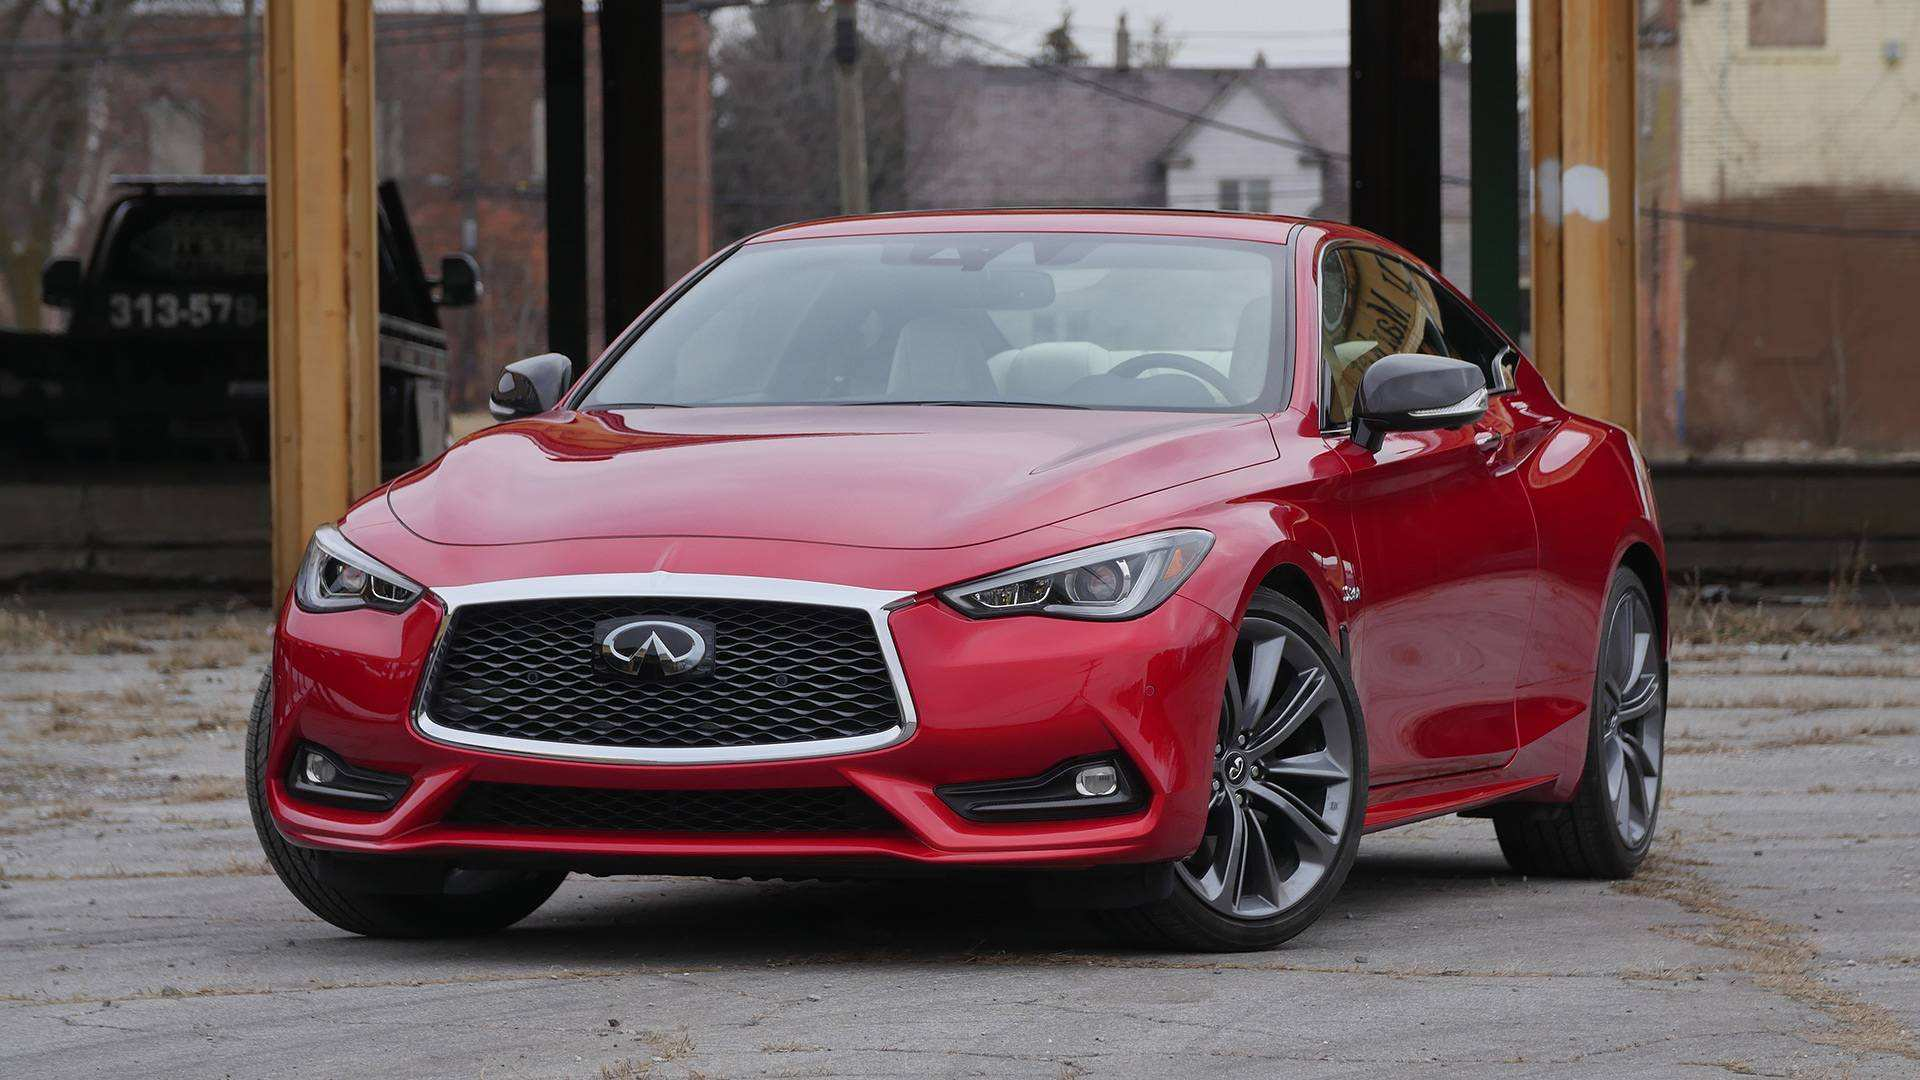 53 Best Infiniti Cars For 2020 Price And Release Date